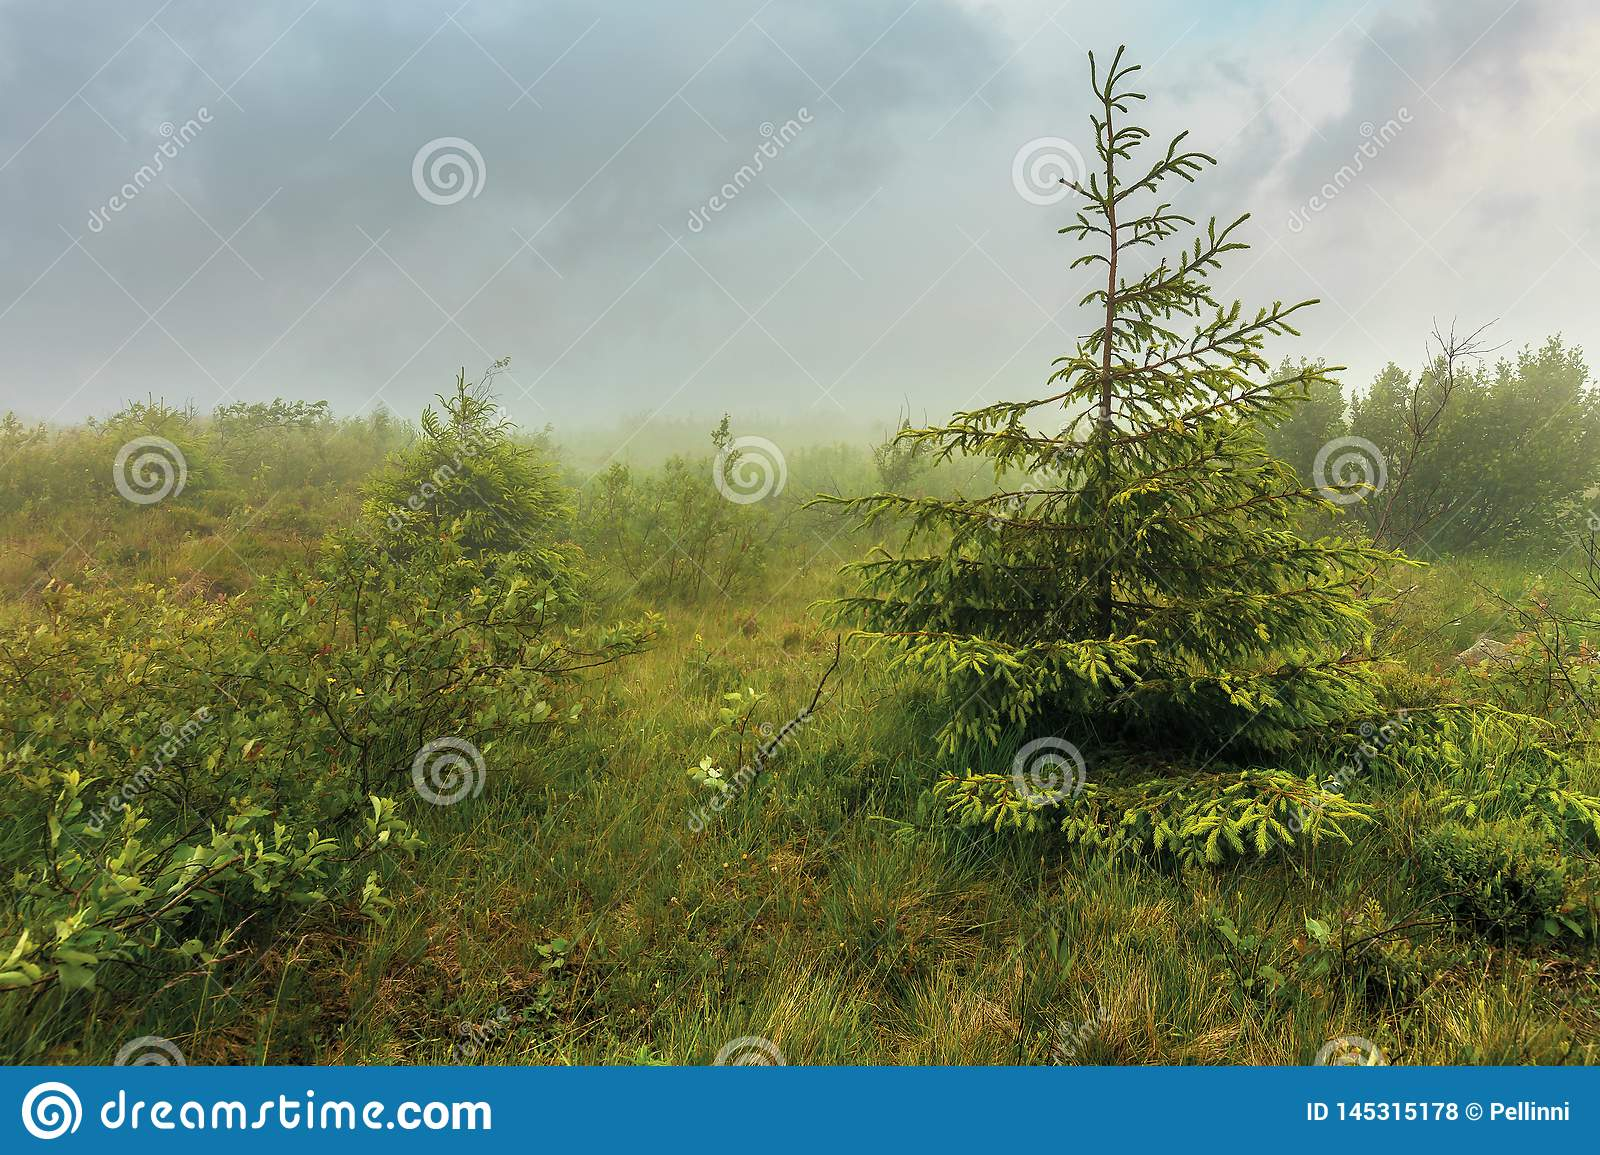 Spruce tree on a meadow in fog